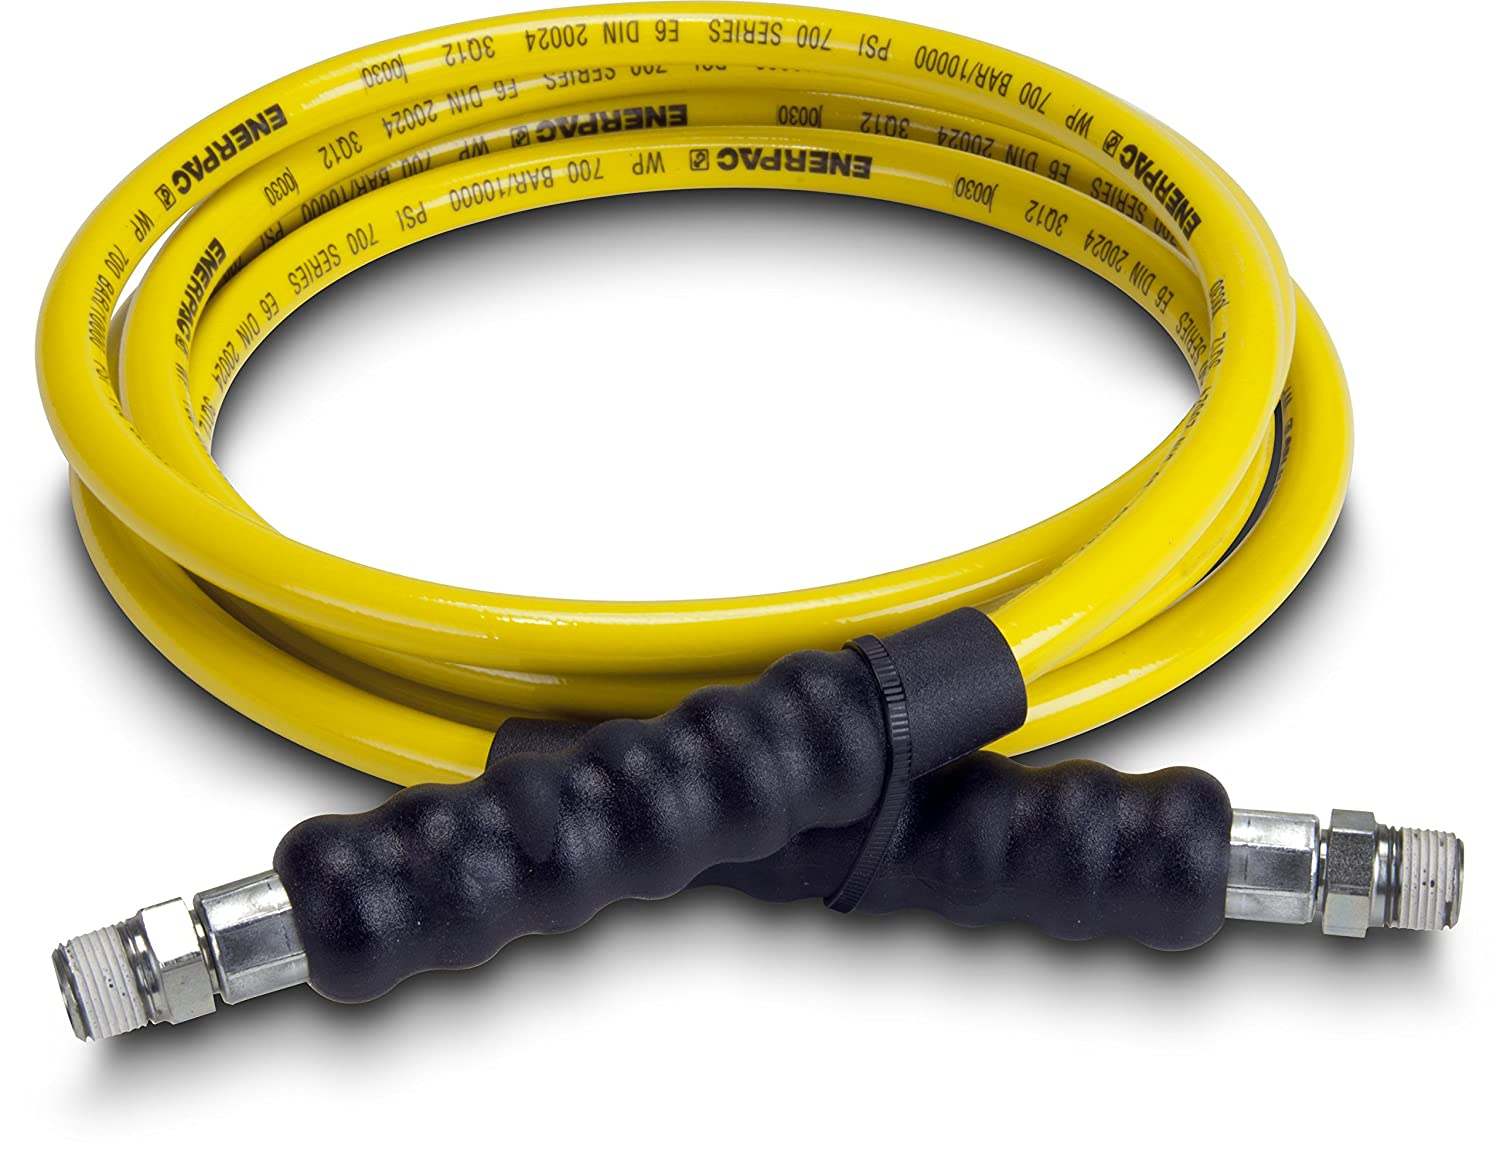 Yellow 700 Series Enerpac H7210 High Pressure Hydraulic Hose 10 Length 0.25 Diameter